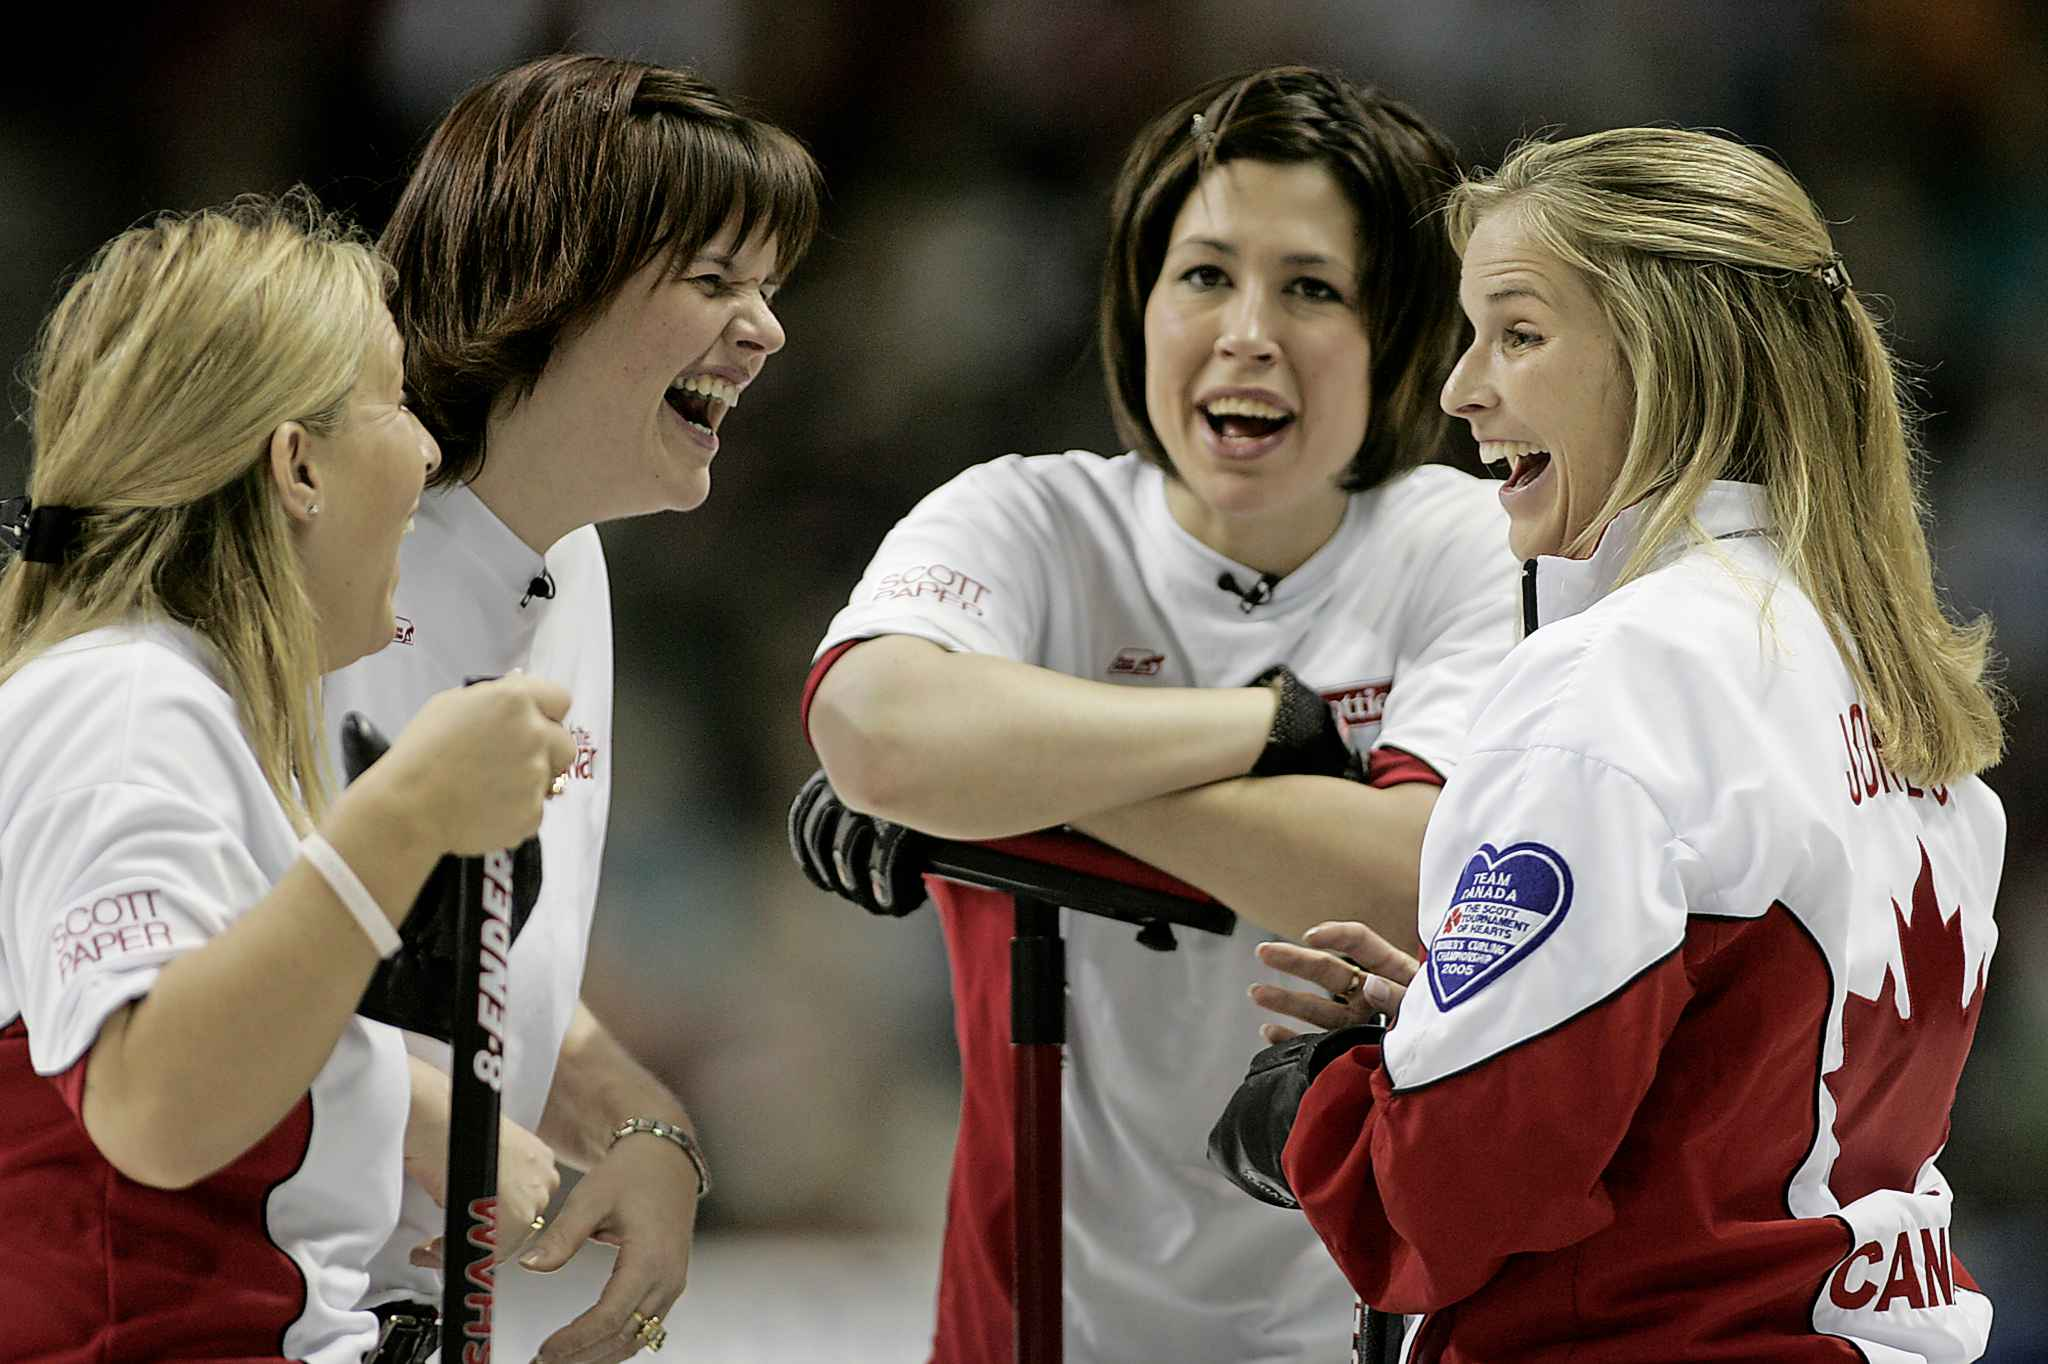 Cathy Overton-Clapham (left), Georgina Wheatcroft, Jill Officer and skip Jennifer Jones (right) share a laugh during the Canadian womens curling championships in 2006.